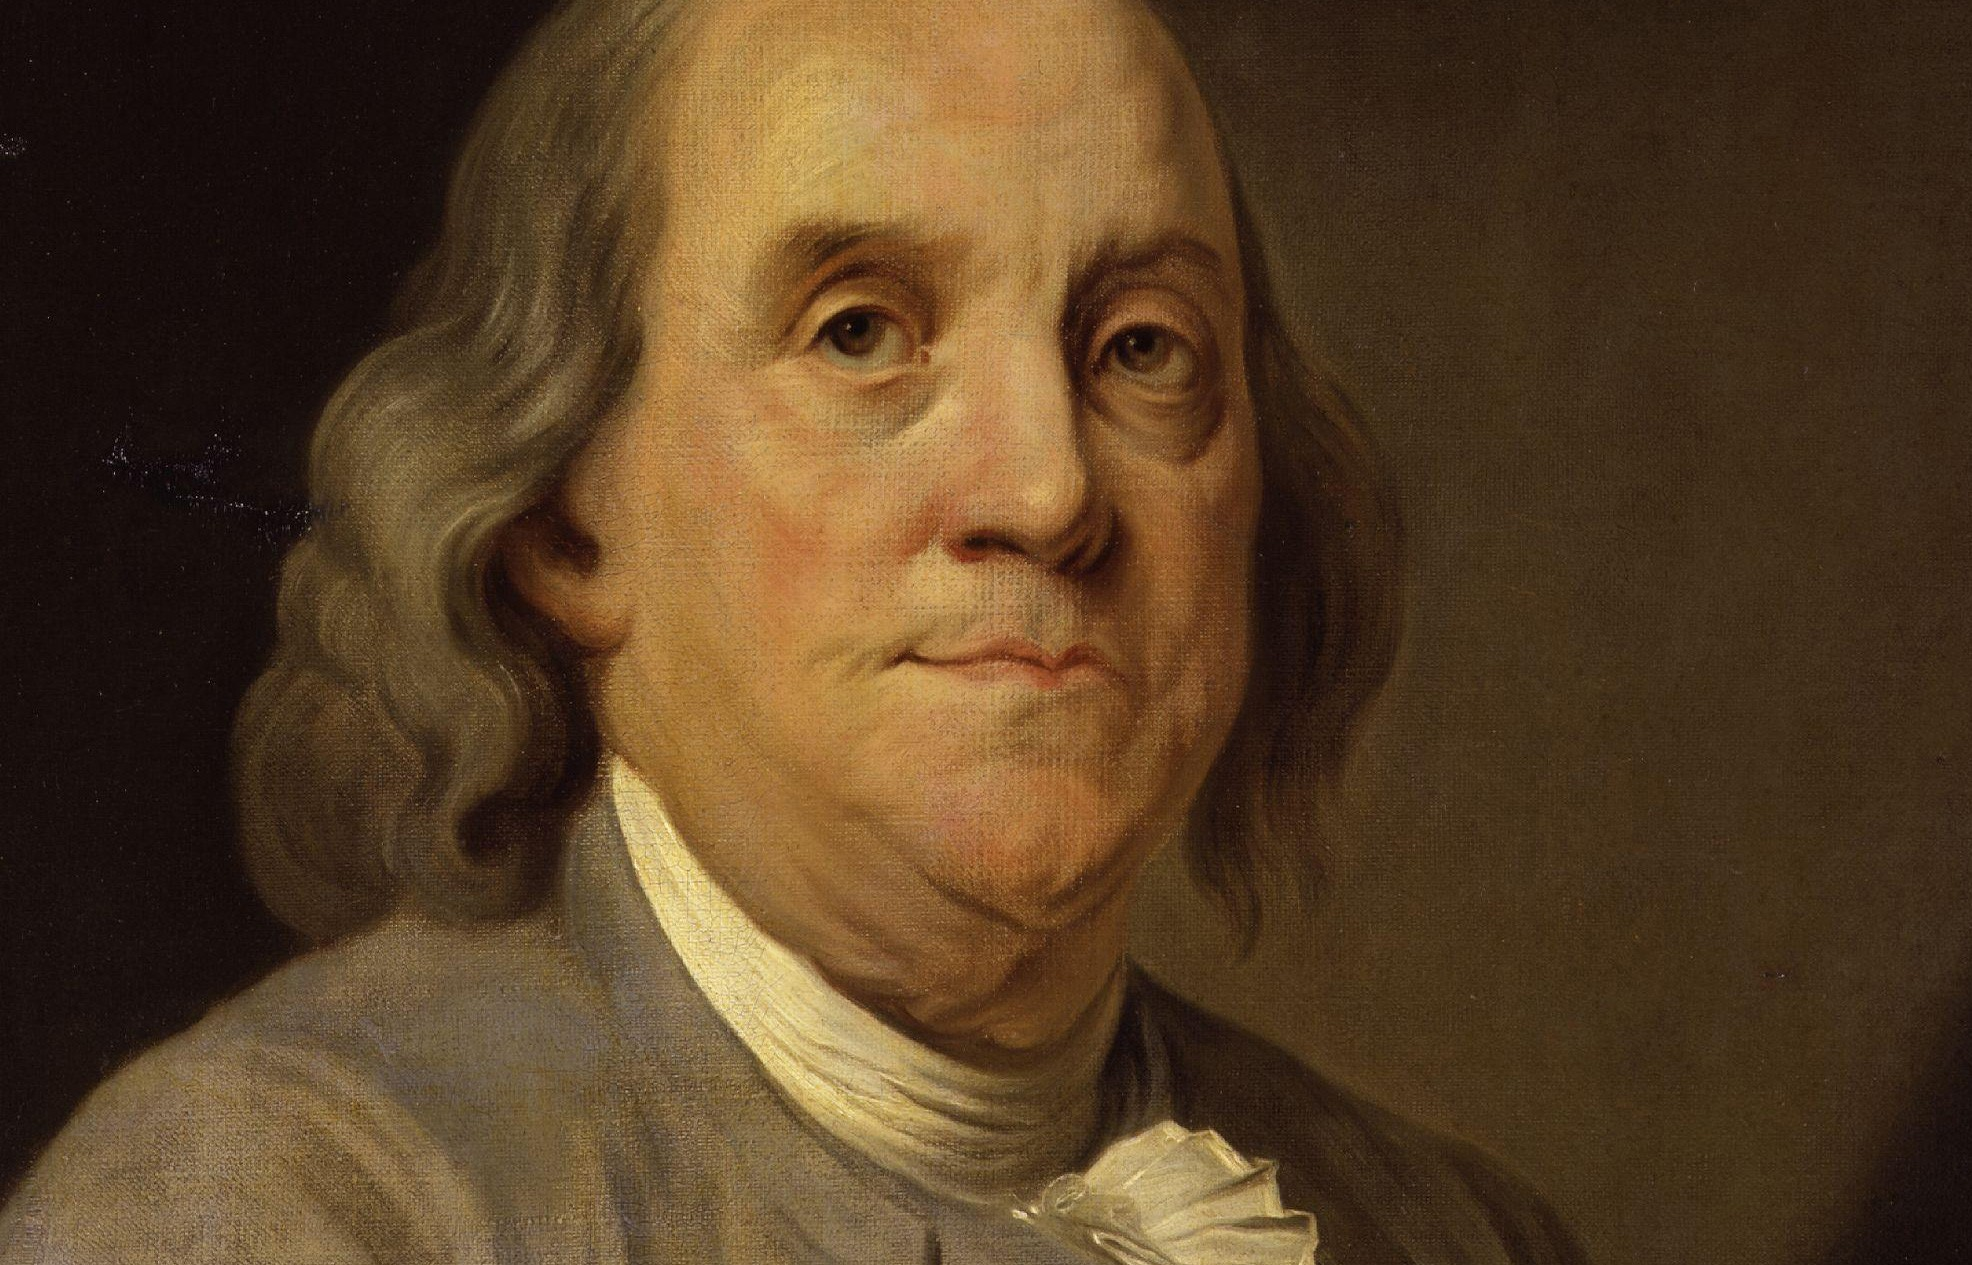 """benjamin franklin as a self-made man essay Benjamin franklin was a self made man living the """"american dream"""" before it even existed related documents: life of bengiman franklin essay."""